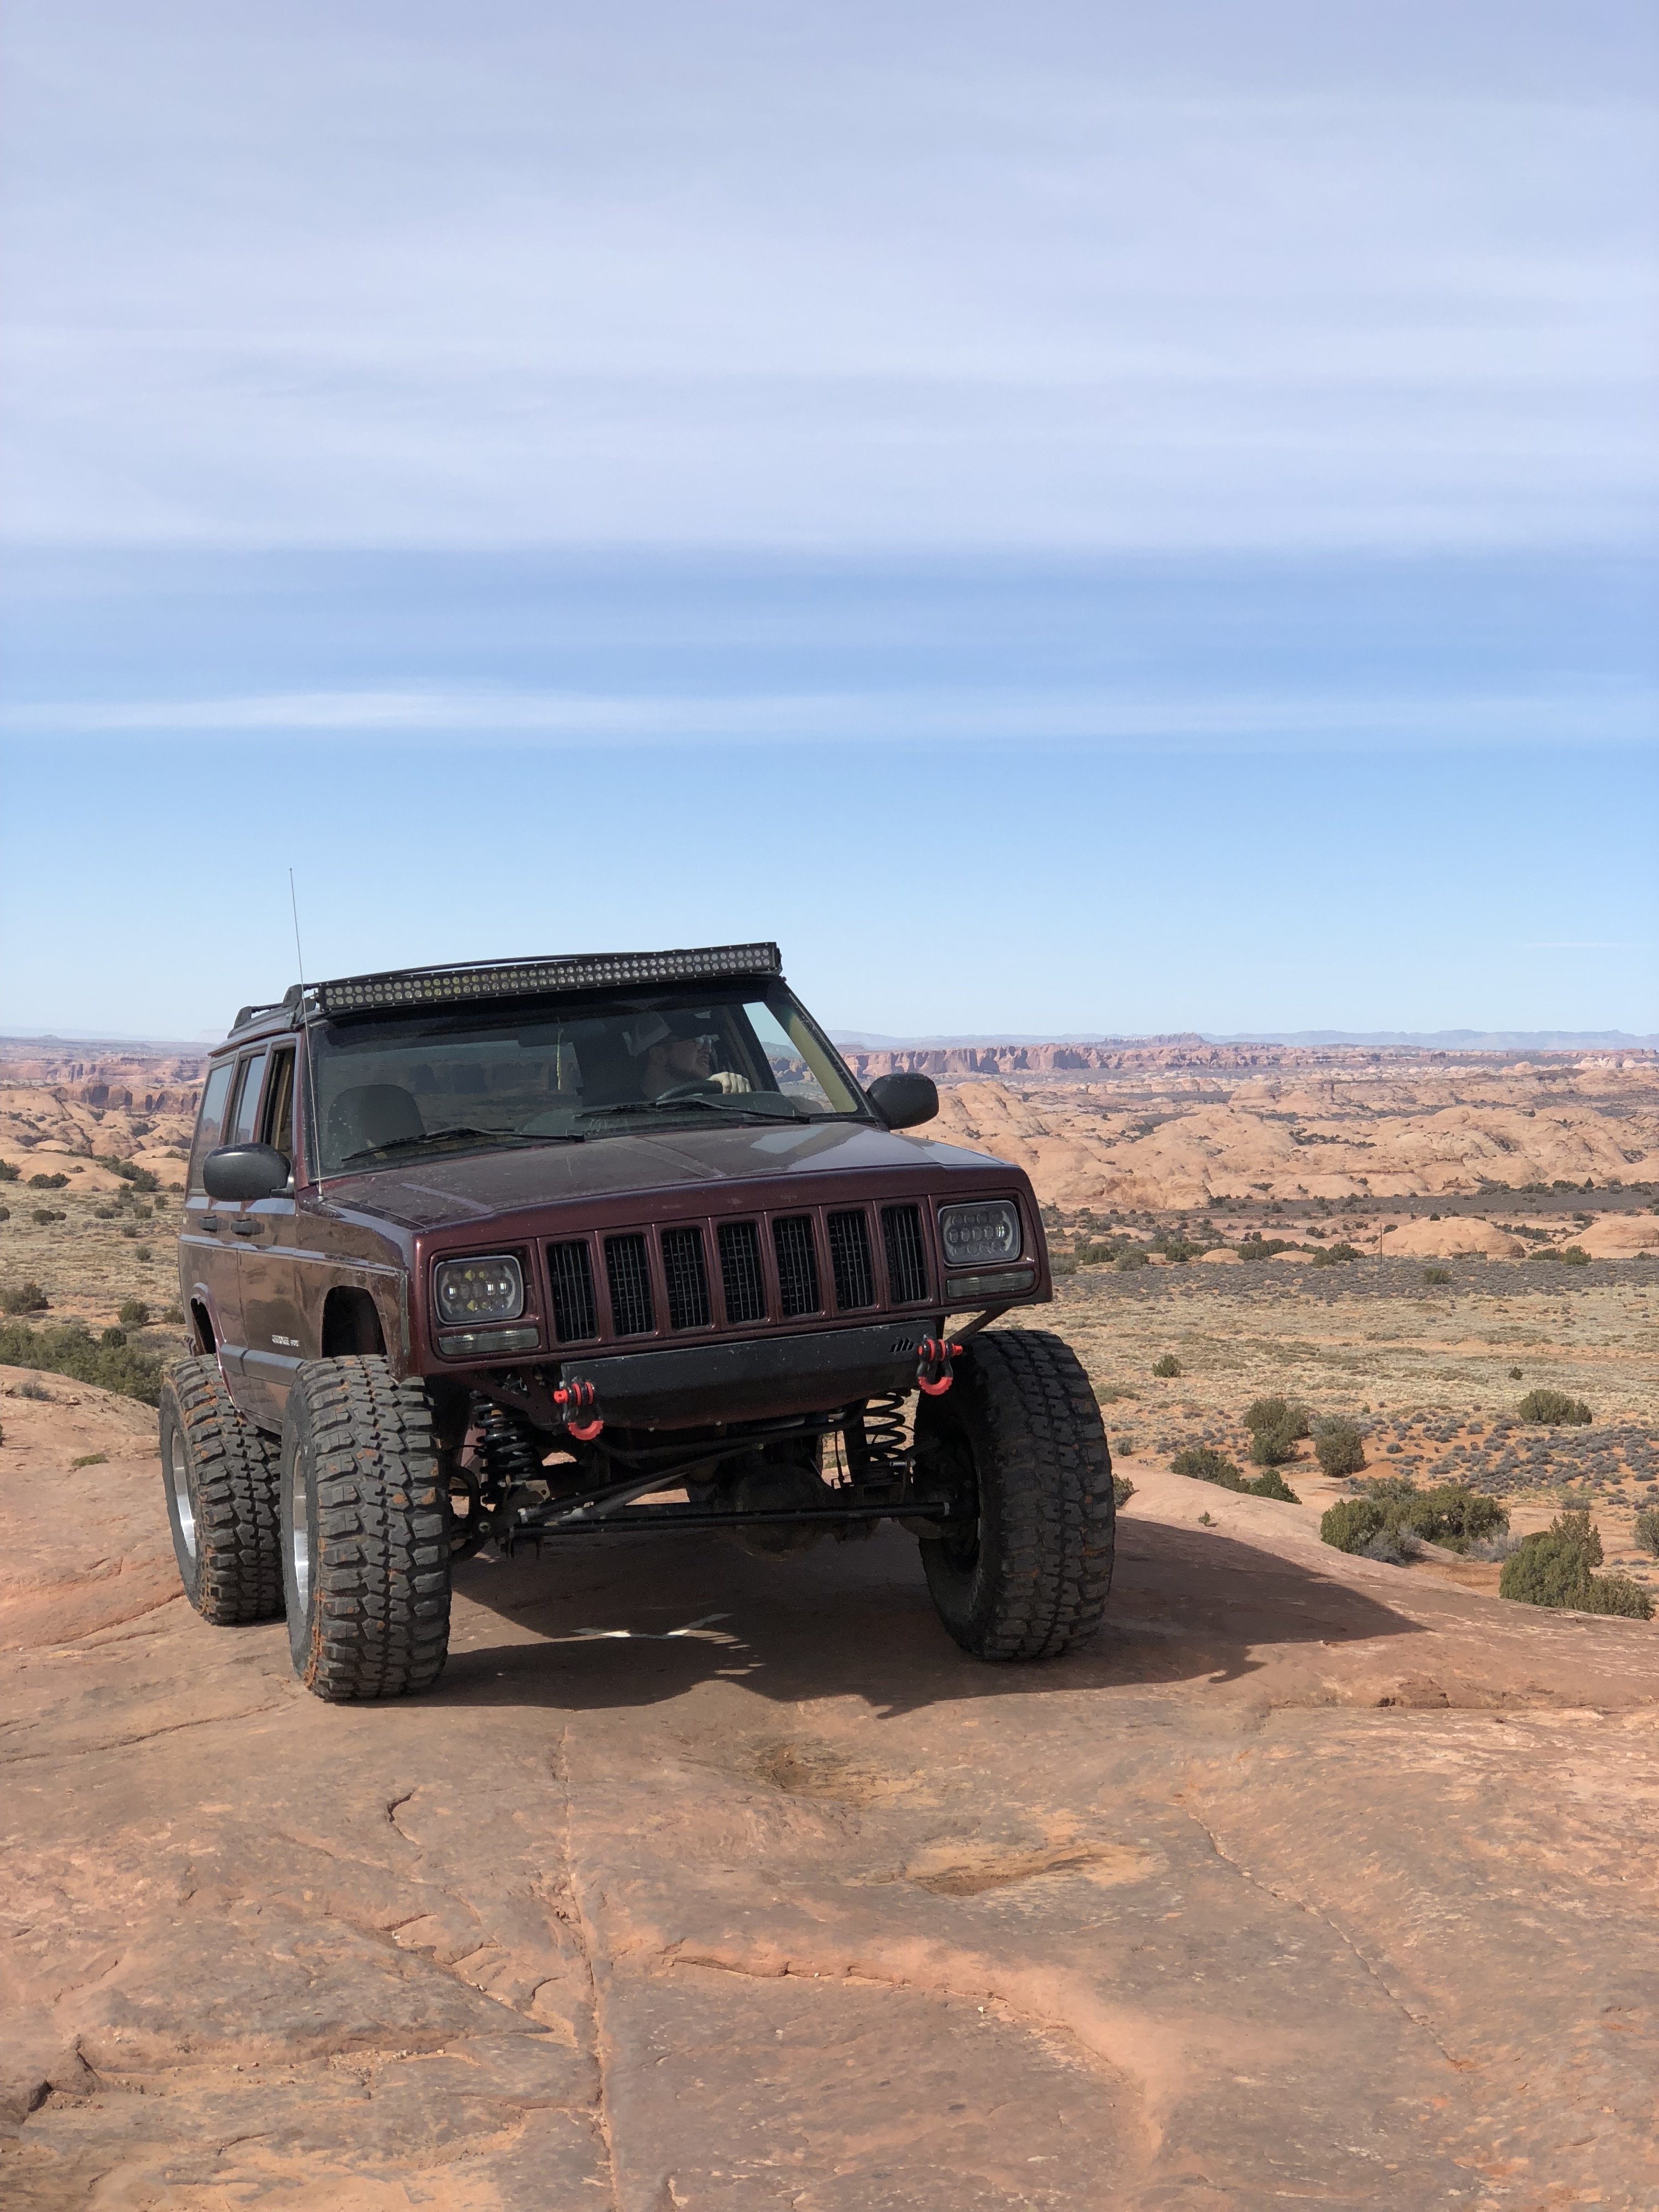 Fins & Things 4X4 Trail in Moab, UT // Hey There, Chelsie